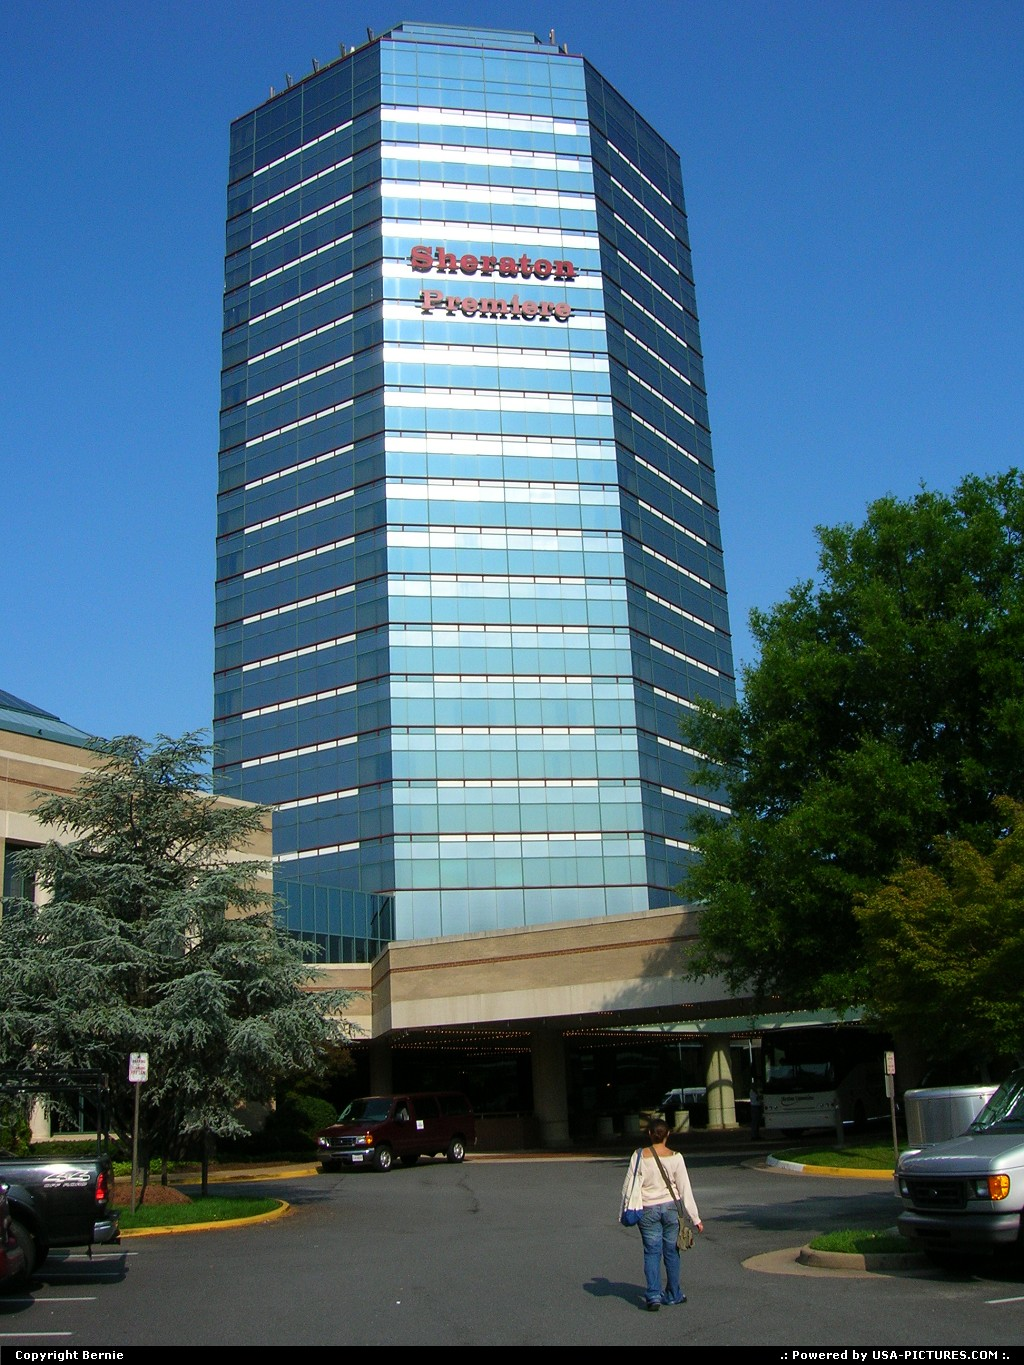 Picture by Bernie: Mc Lean Virginia   hotel, tower